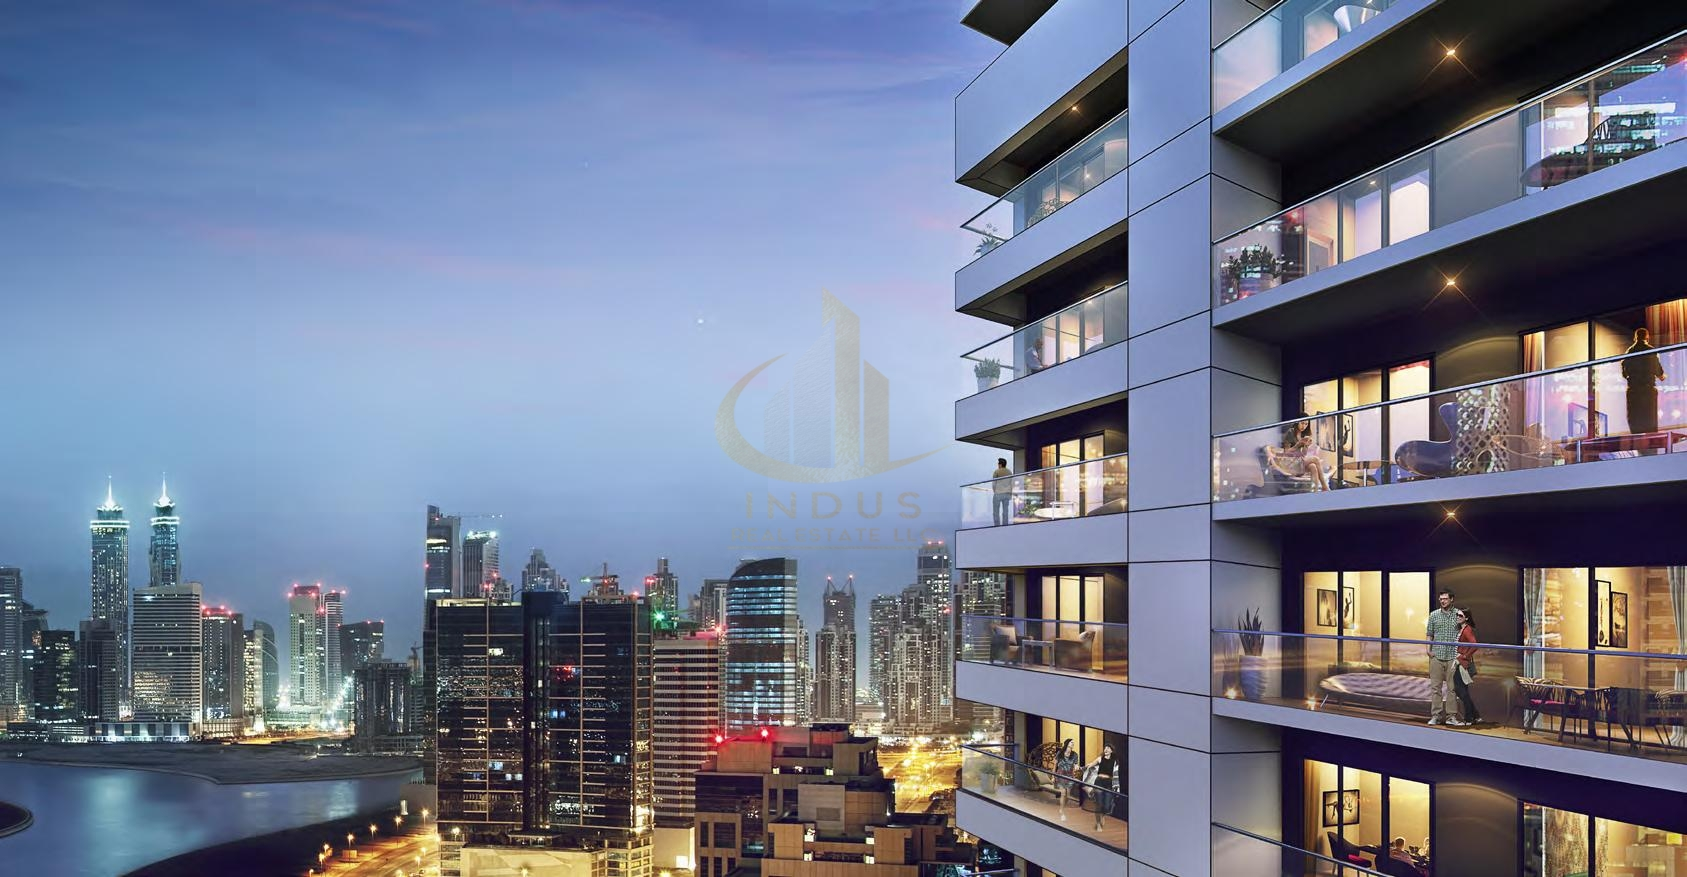 Overlooking the Dubai Canal and in close proximity to the prestigious Downtown Dubai Main image